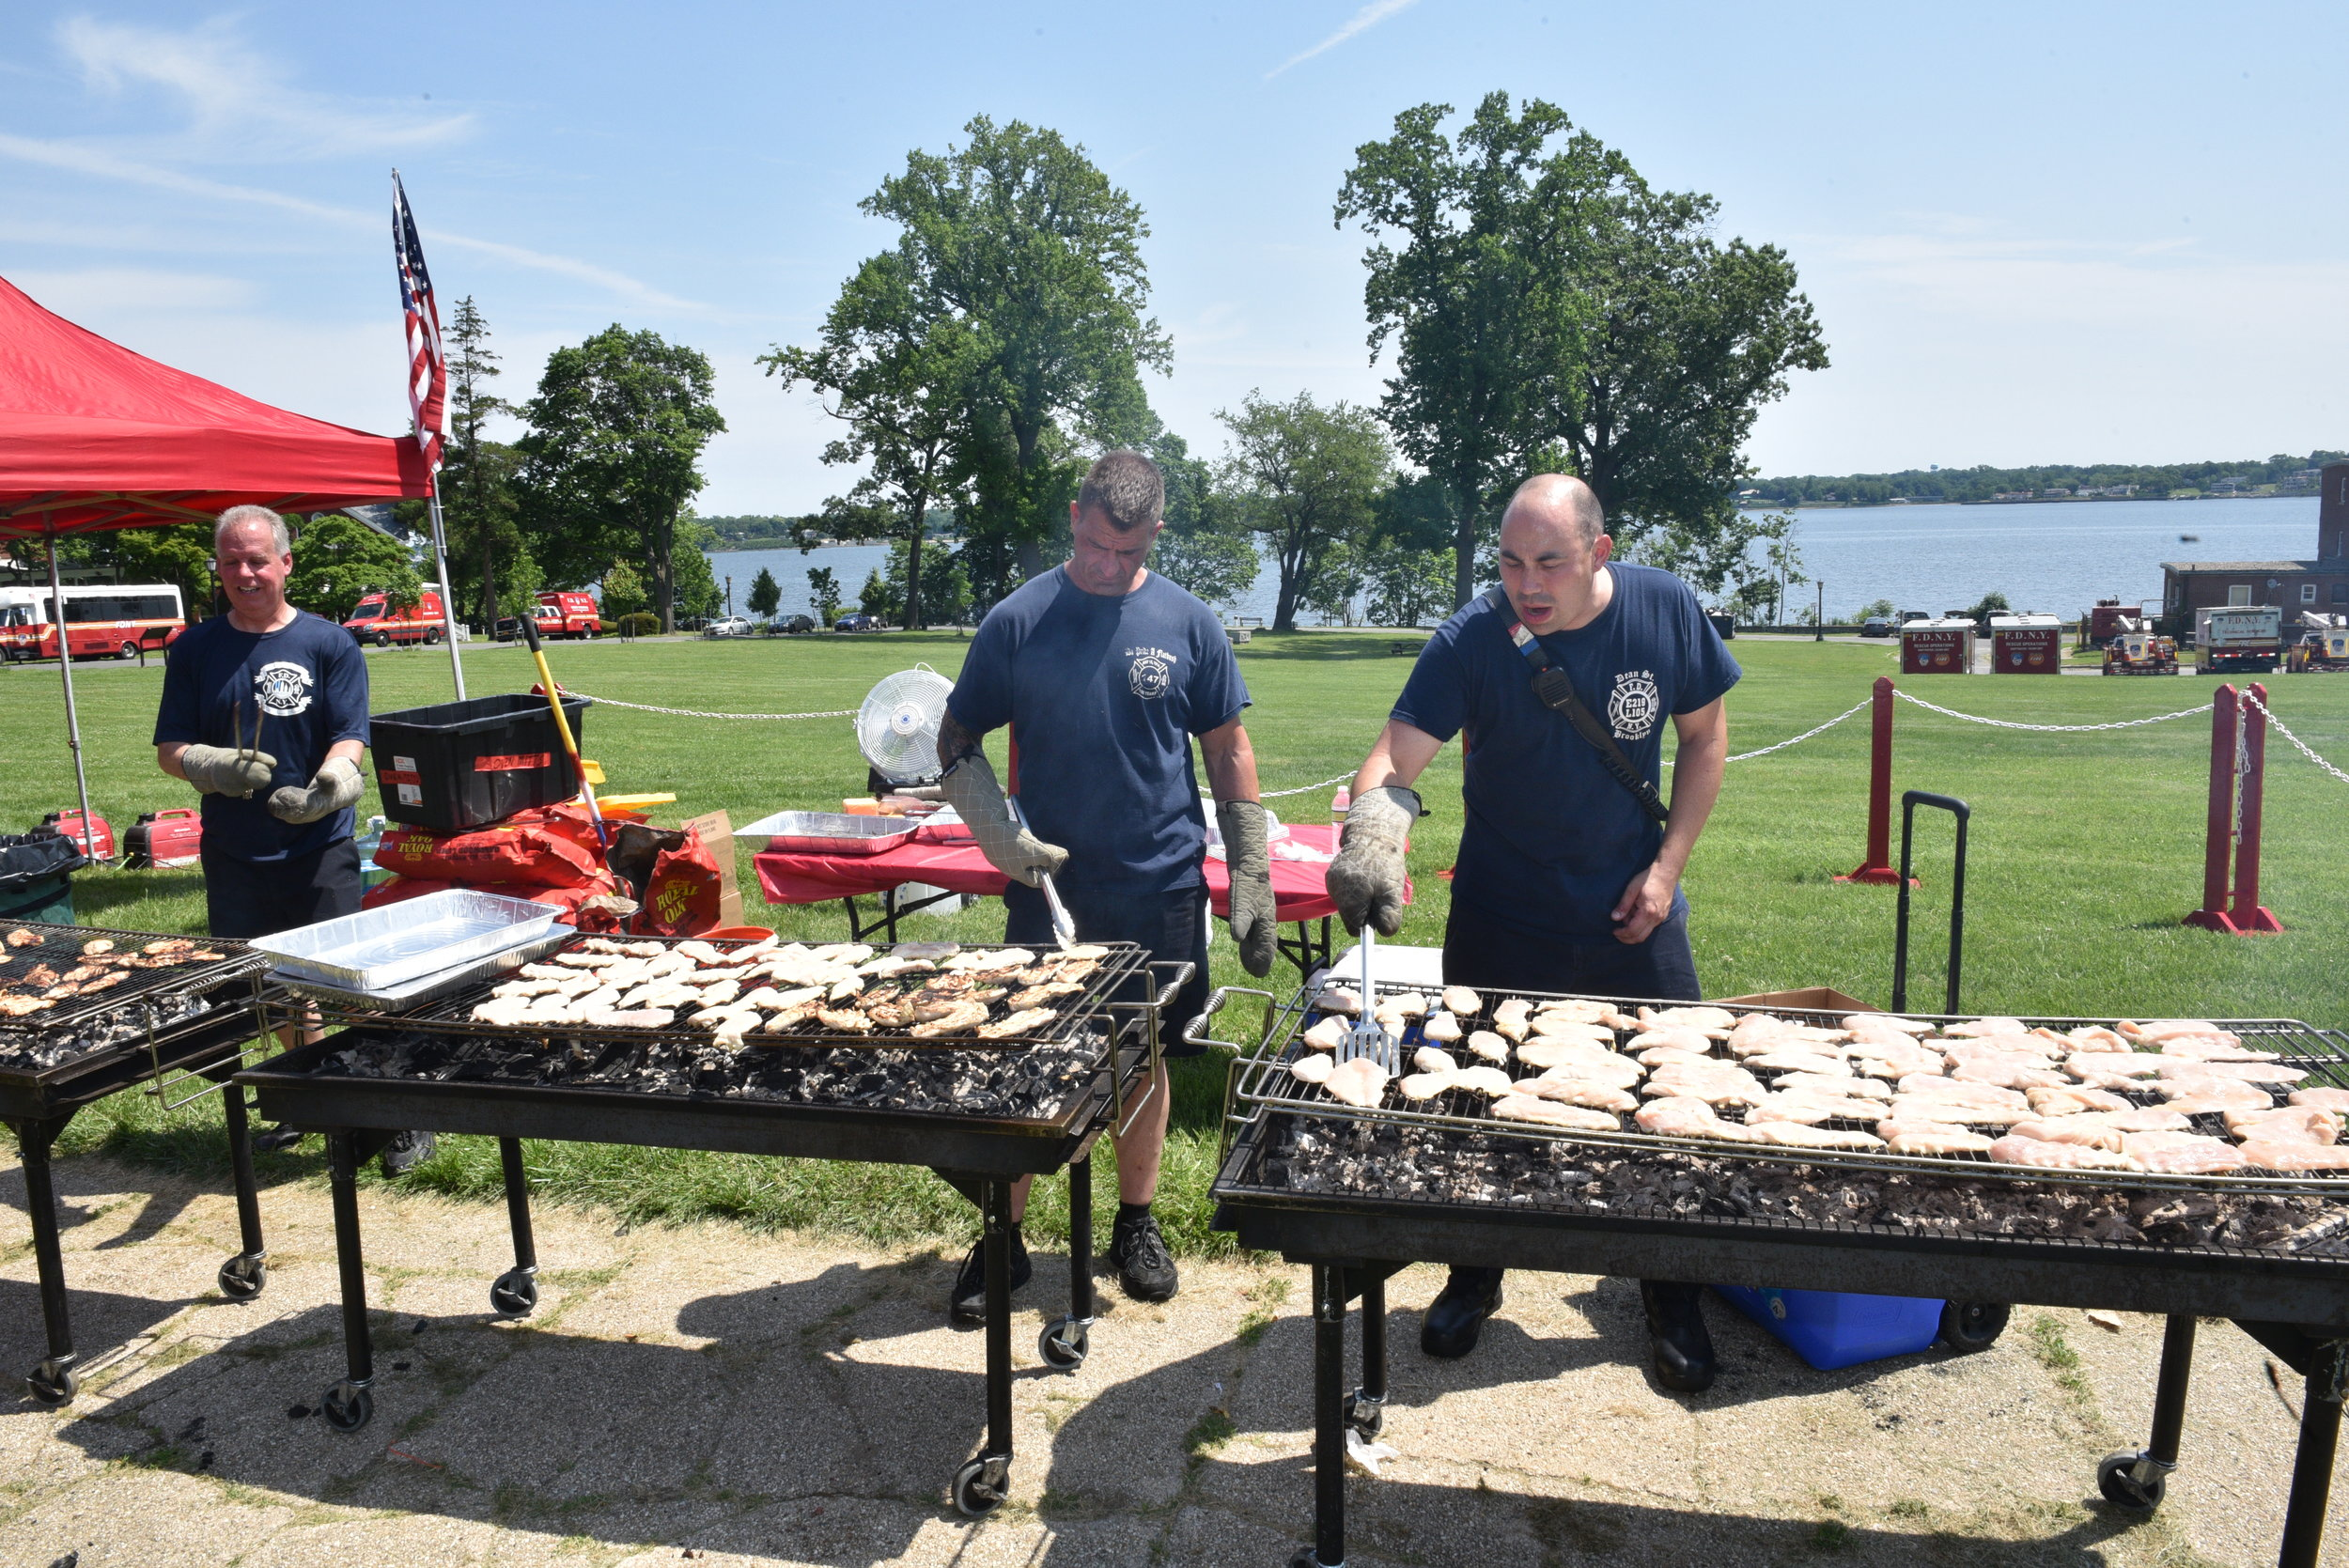 20180609-Fired-Up-Cure-Picnic-KC-159.JPG